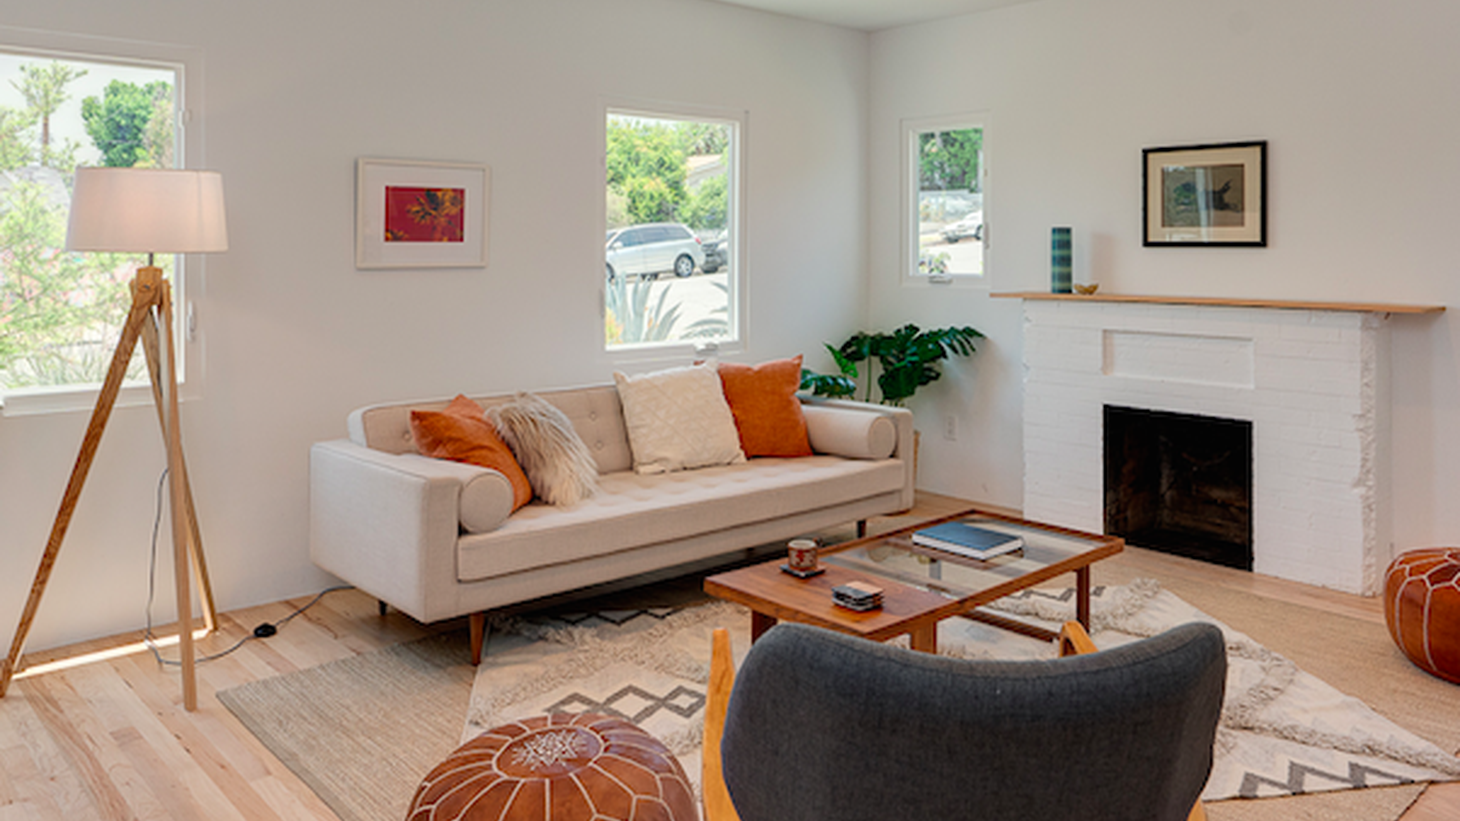 How Home Staging Makes Housing More Expensive Press Play Kcrw